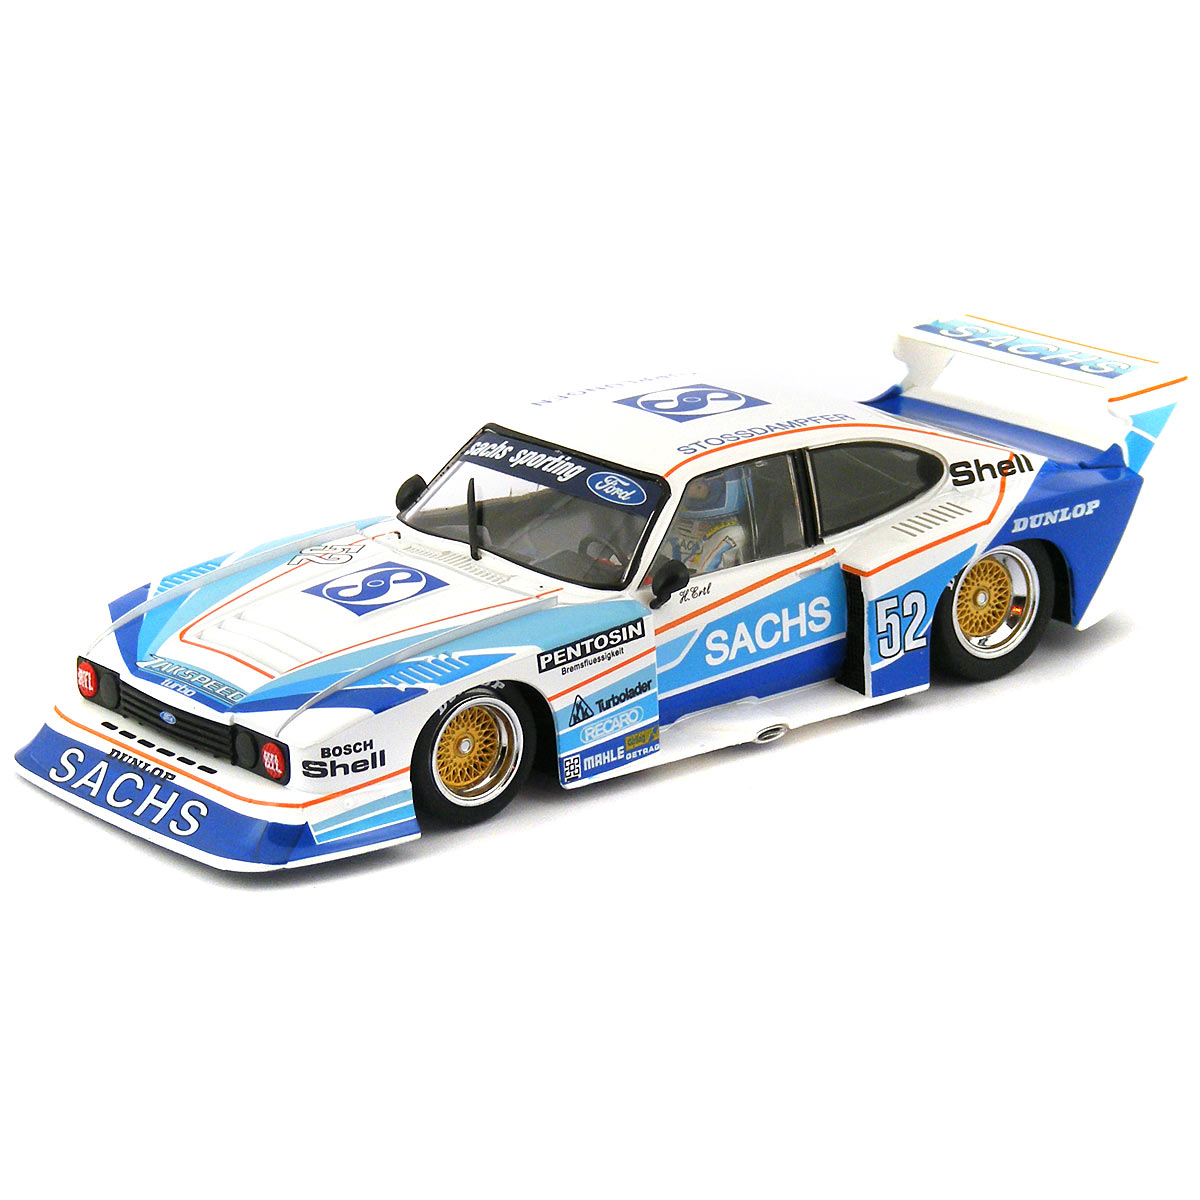 racer sideways ford capri zakspeed sachs racing sw36. Black Bedroom Furniture Sets. Home Design Ideas